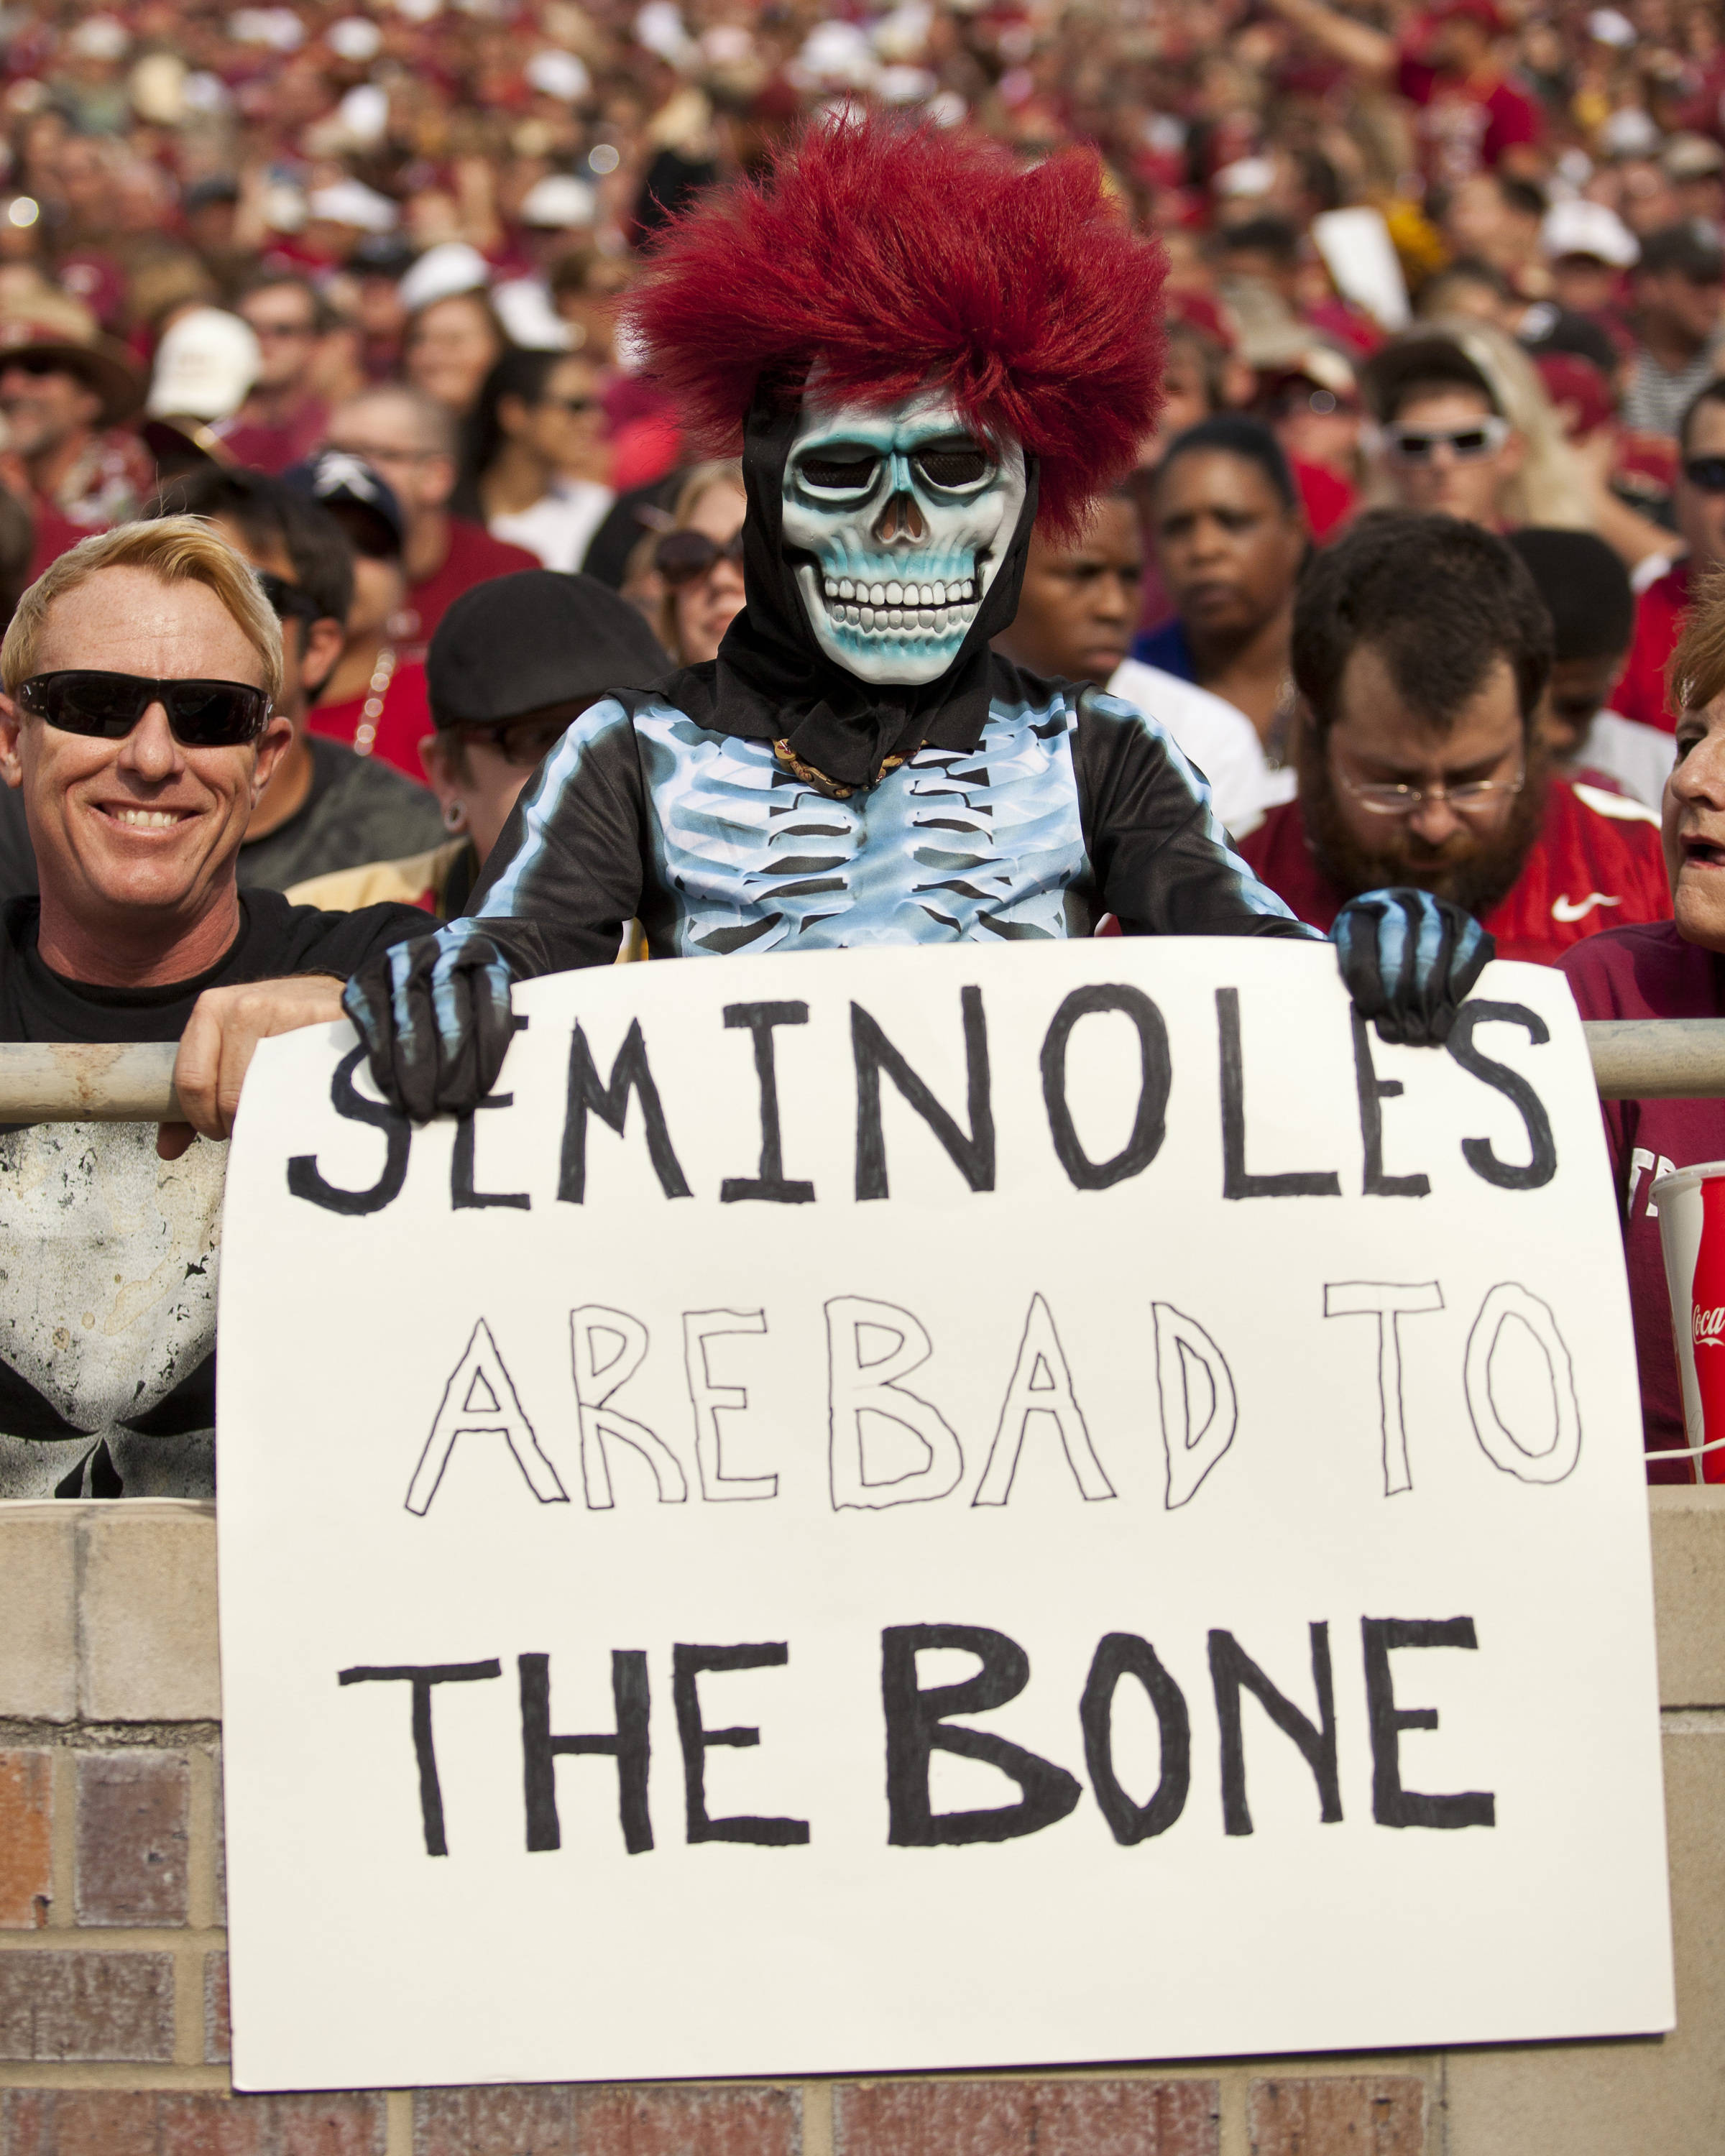 A costumed fan cheers on the Seminoles during FSU's 48-7 victory over Duke on October 27, 2012 in Tallahassee, Fla.